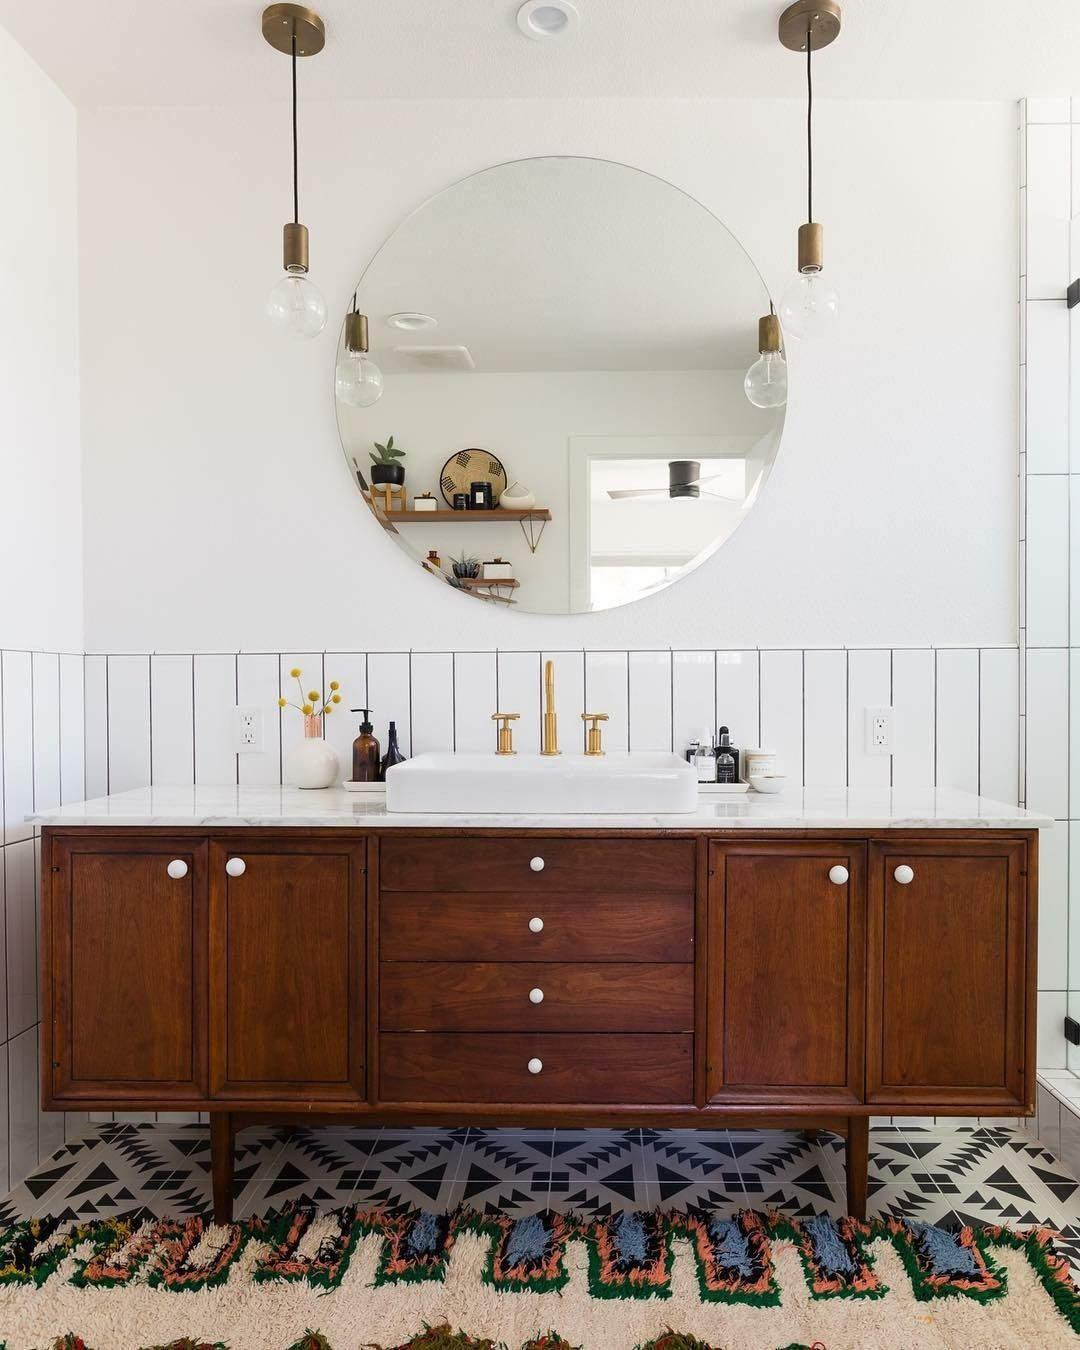 BATHROOM INSPIRATION ANABER DESIGN THE PERFECT